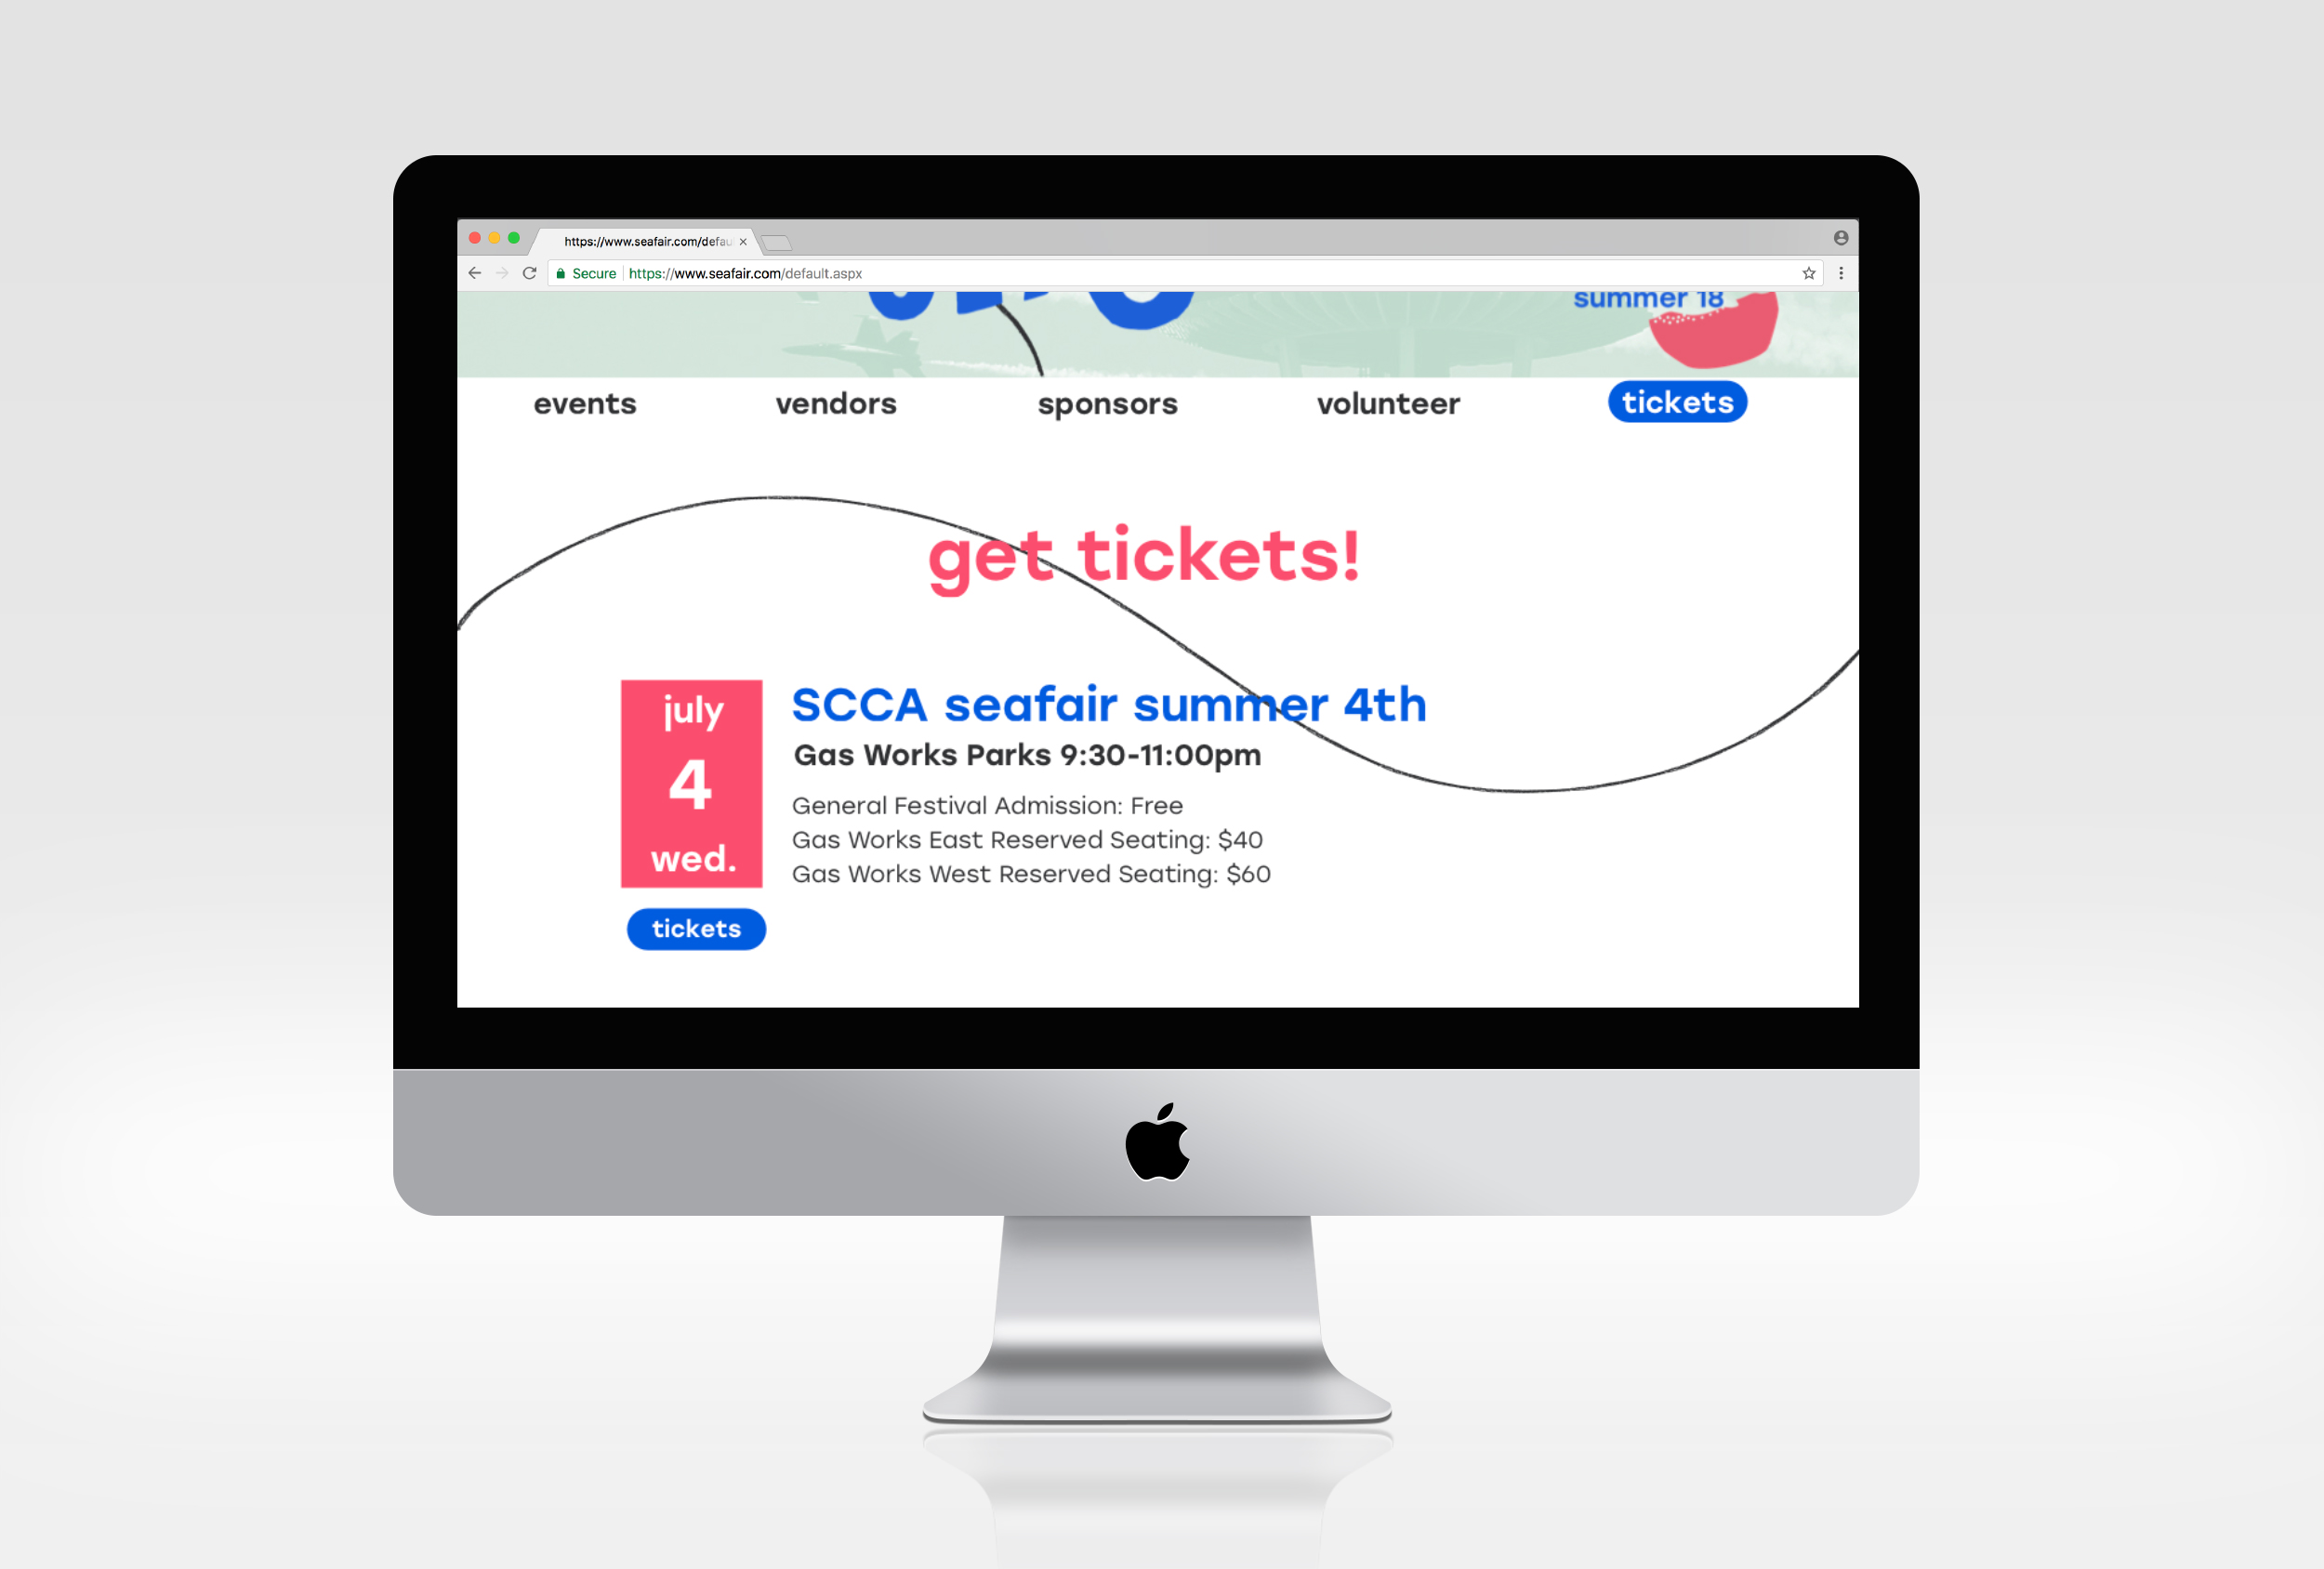 seafair-desktop-mockup-tickets.jpg